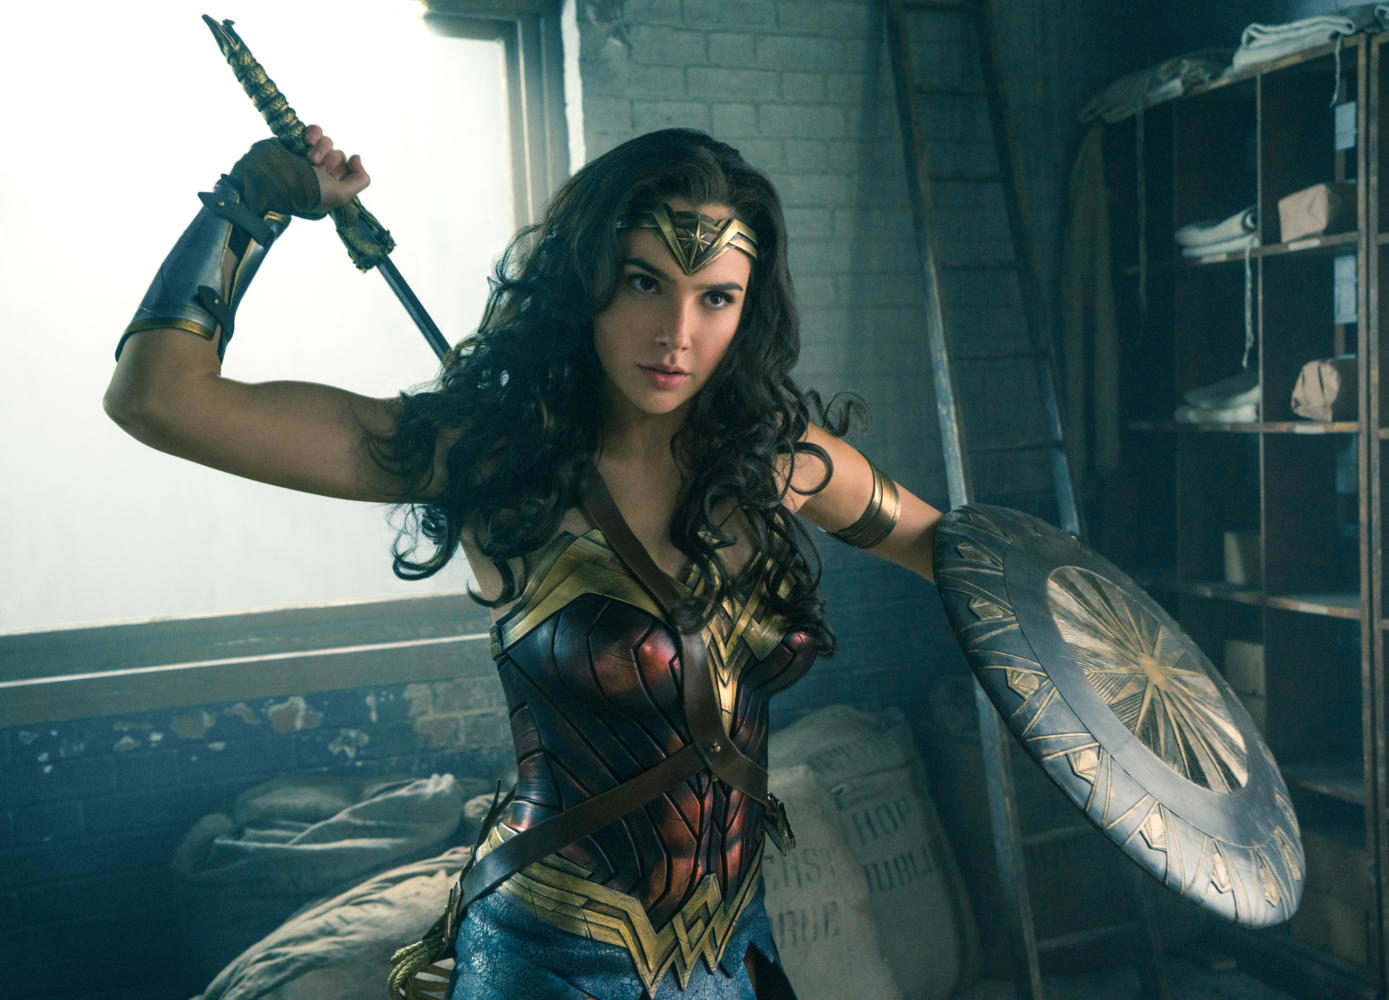 Wonder+Woman+%28Gal+Gadot%29+is+simply+the+most+powerful+person+on+screen+--+and+the+movie+is+much+better+for+it.